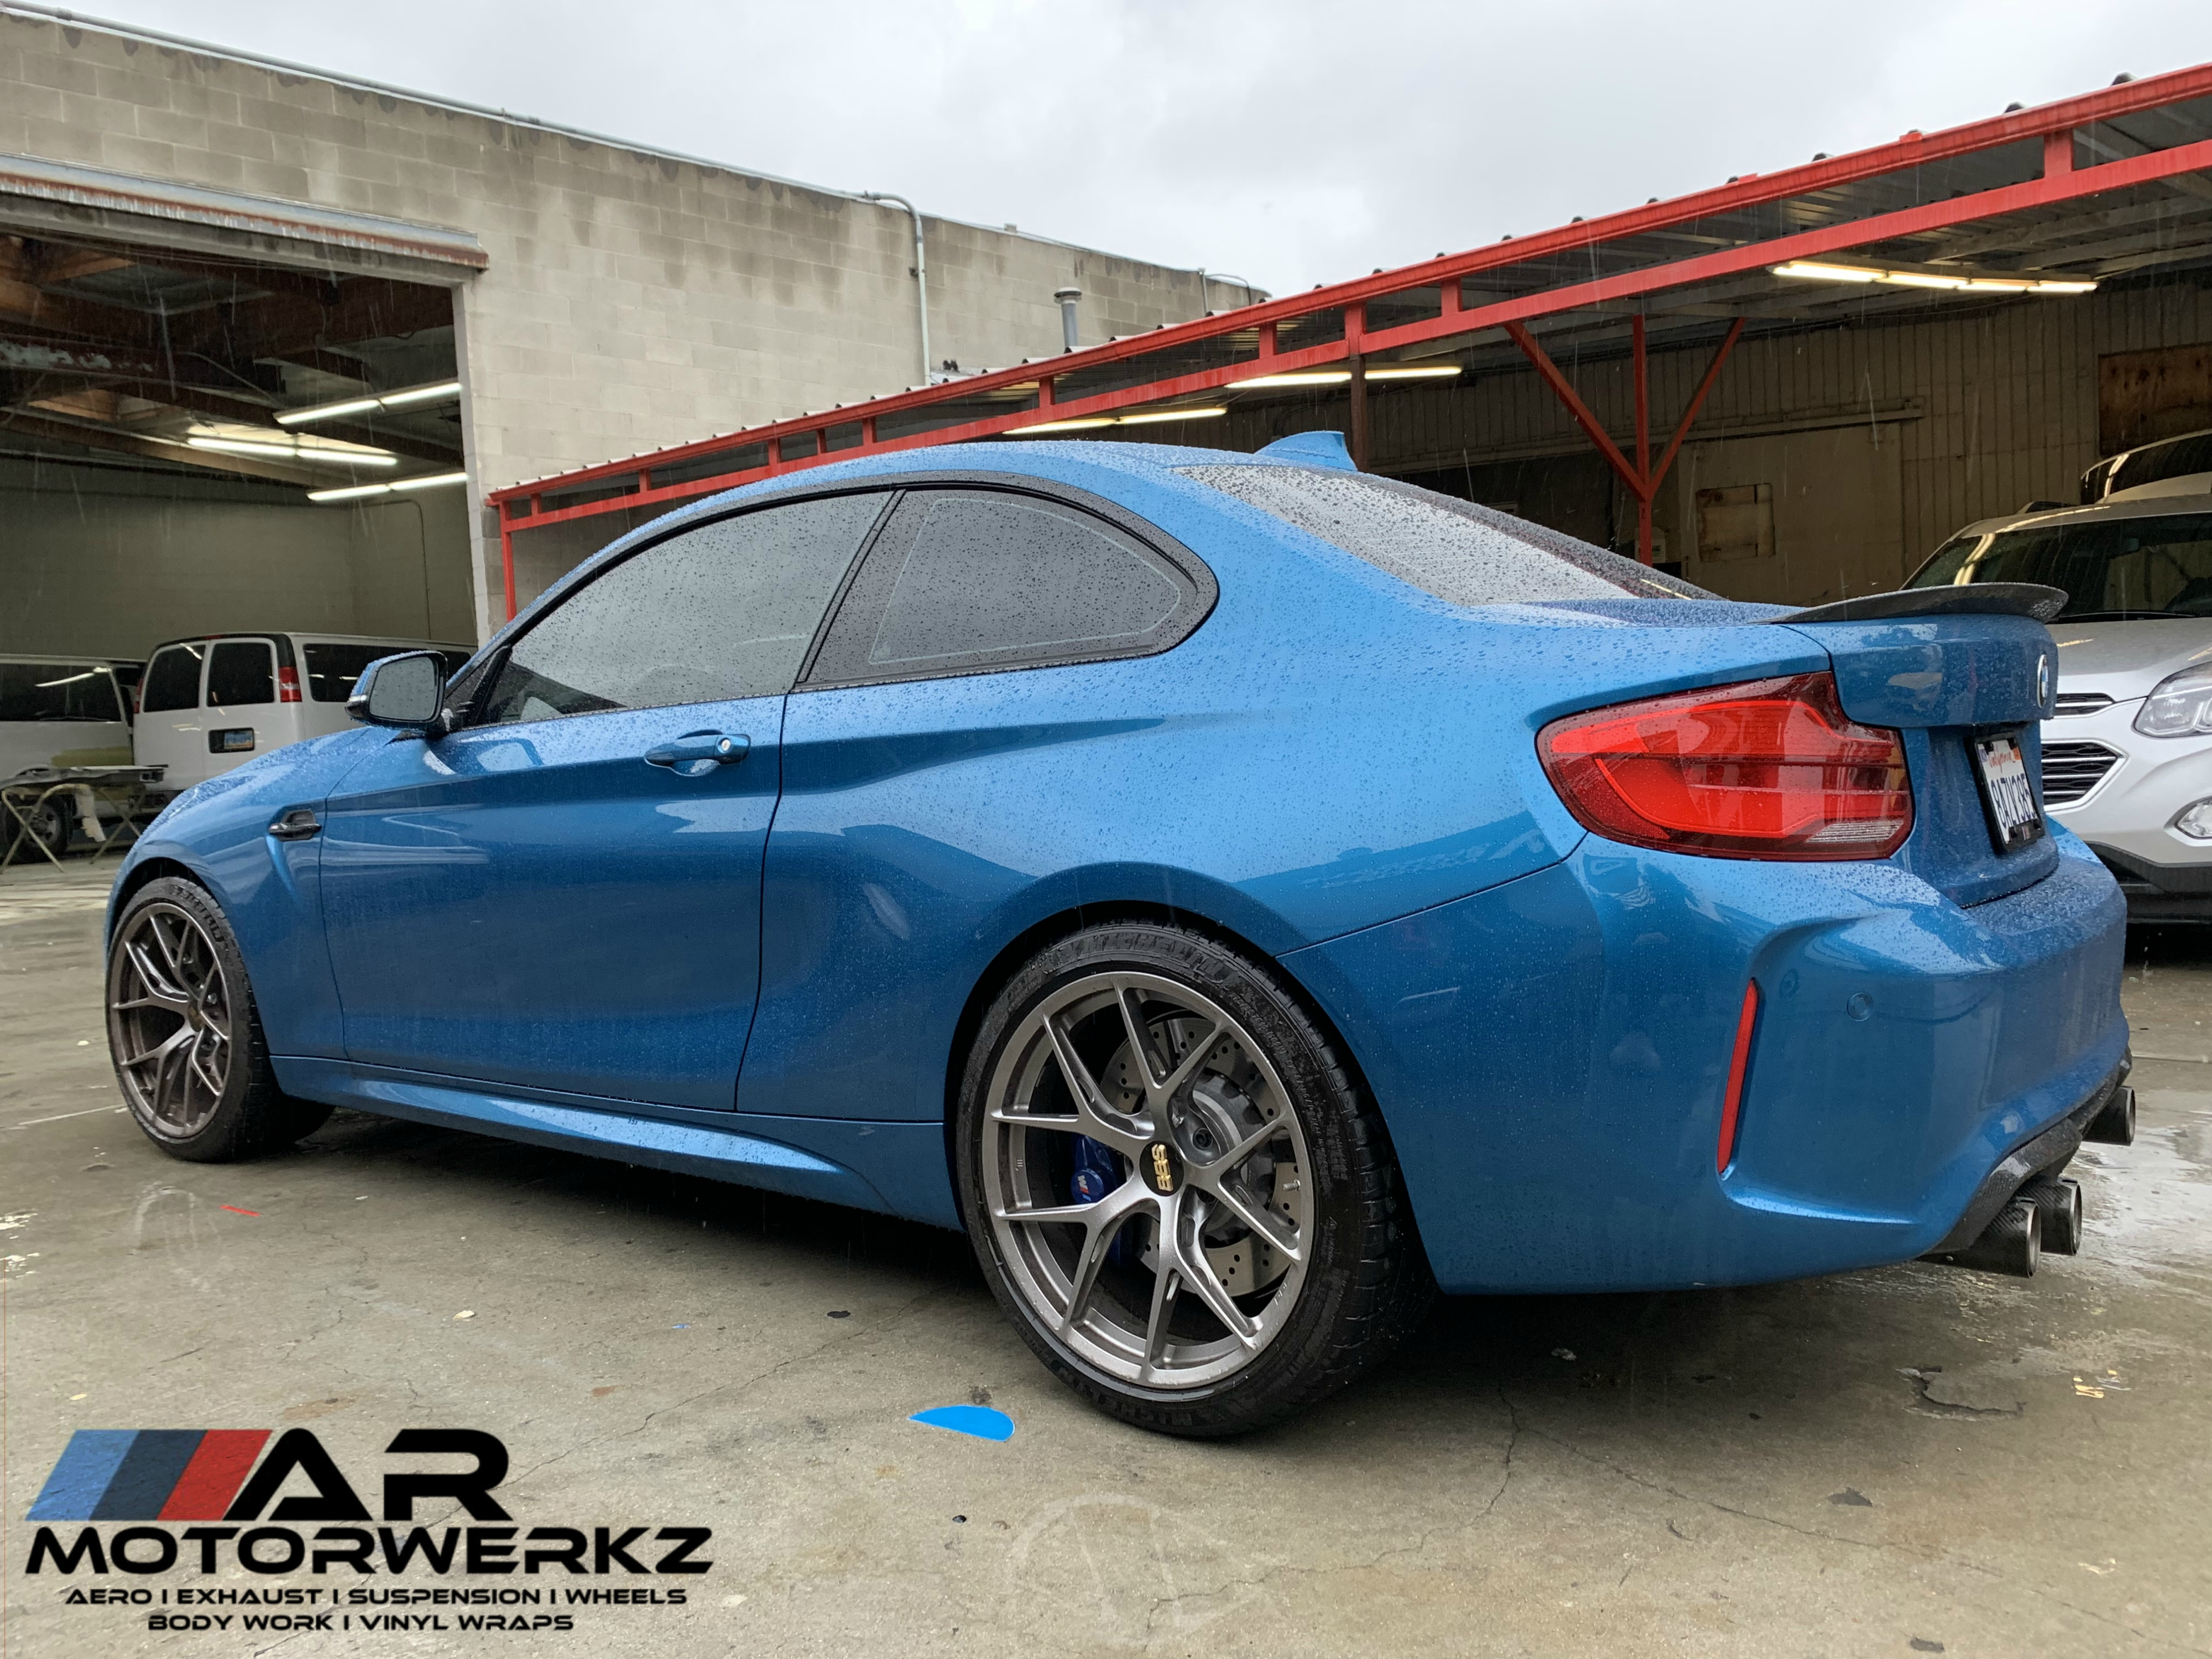 Bbs Wheels L Best Price L 1 Direct Dealer Page 13 Bmw 1 Series Coupe Forum 1 Series Convertible Forum 1m Tii 135i 128i Coupe Cabrio Hatchback Bmw E82 E88 128i 130i 135i